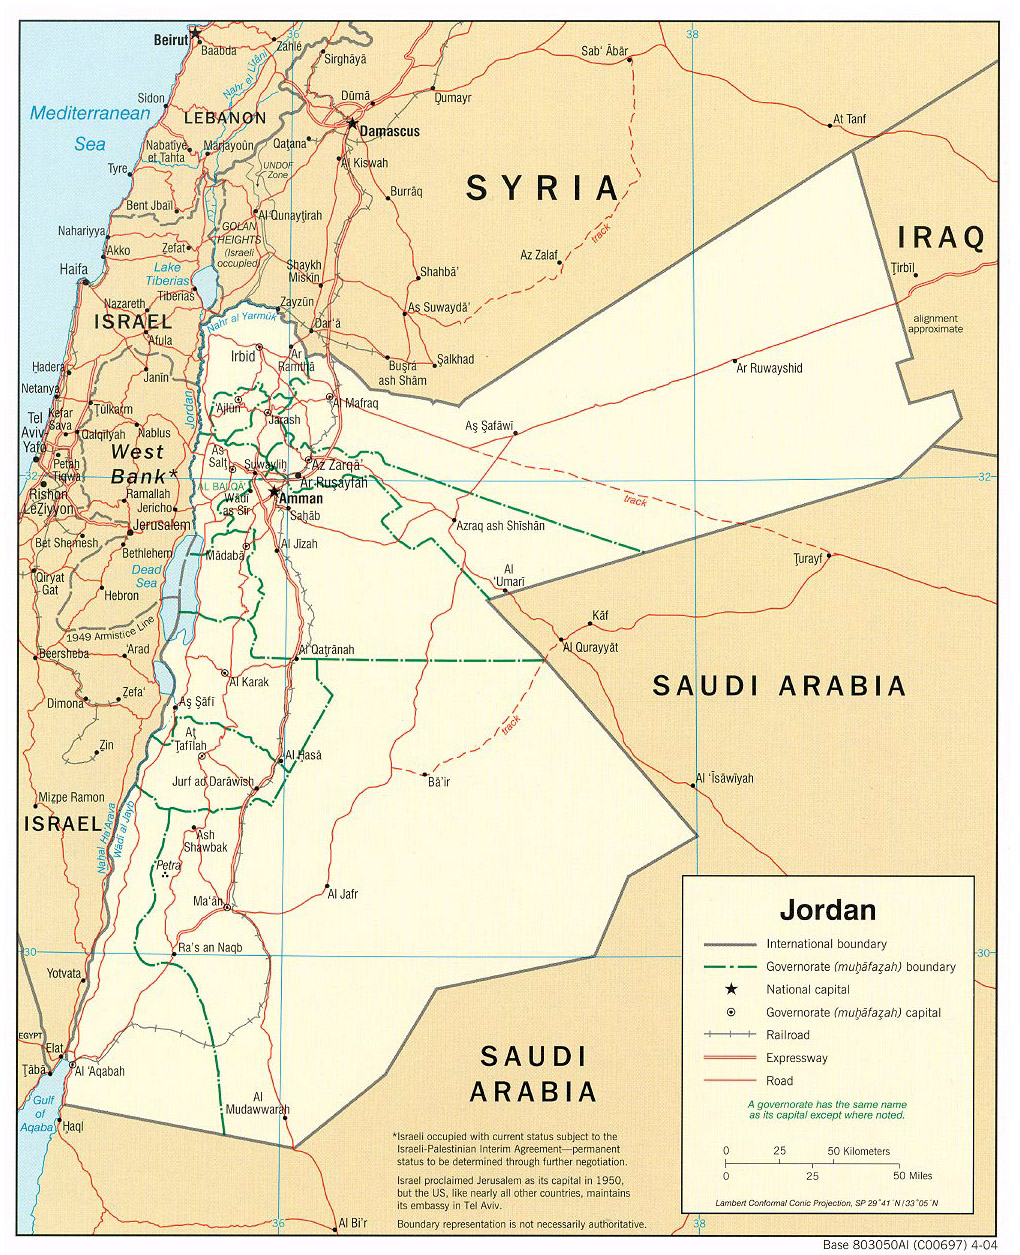 Maps of jordan detailed map of jordan in english tourist map of large political and administrative map of jordan with roads and cities 2004 publicscrutiny Choice Image